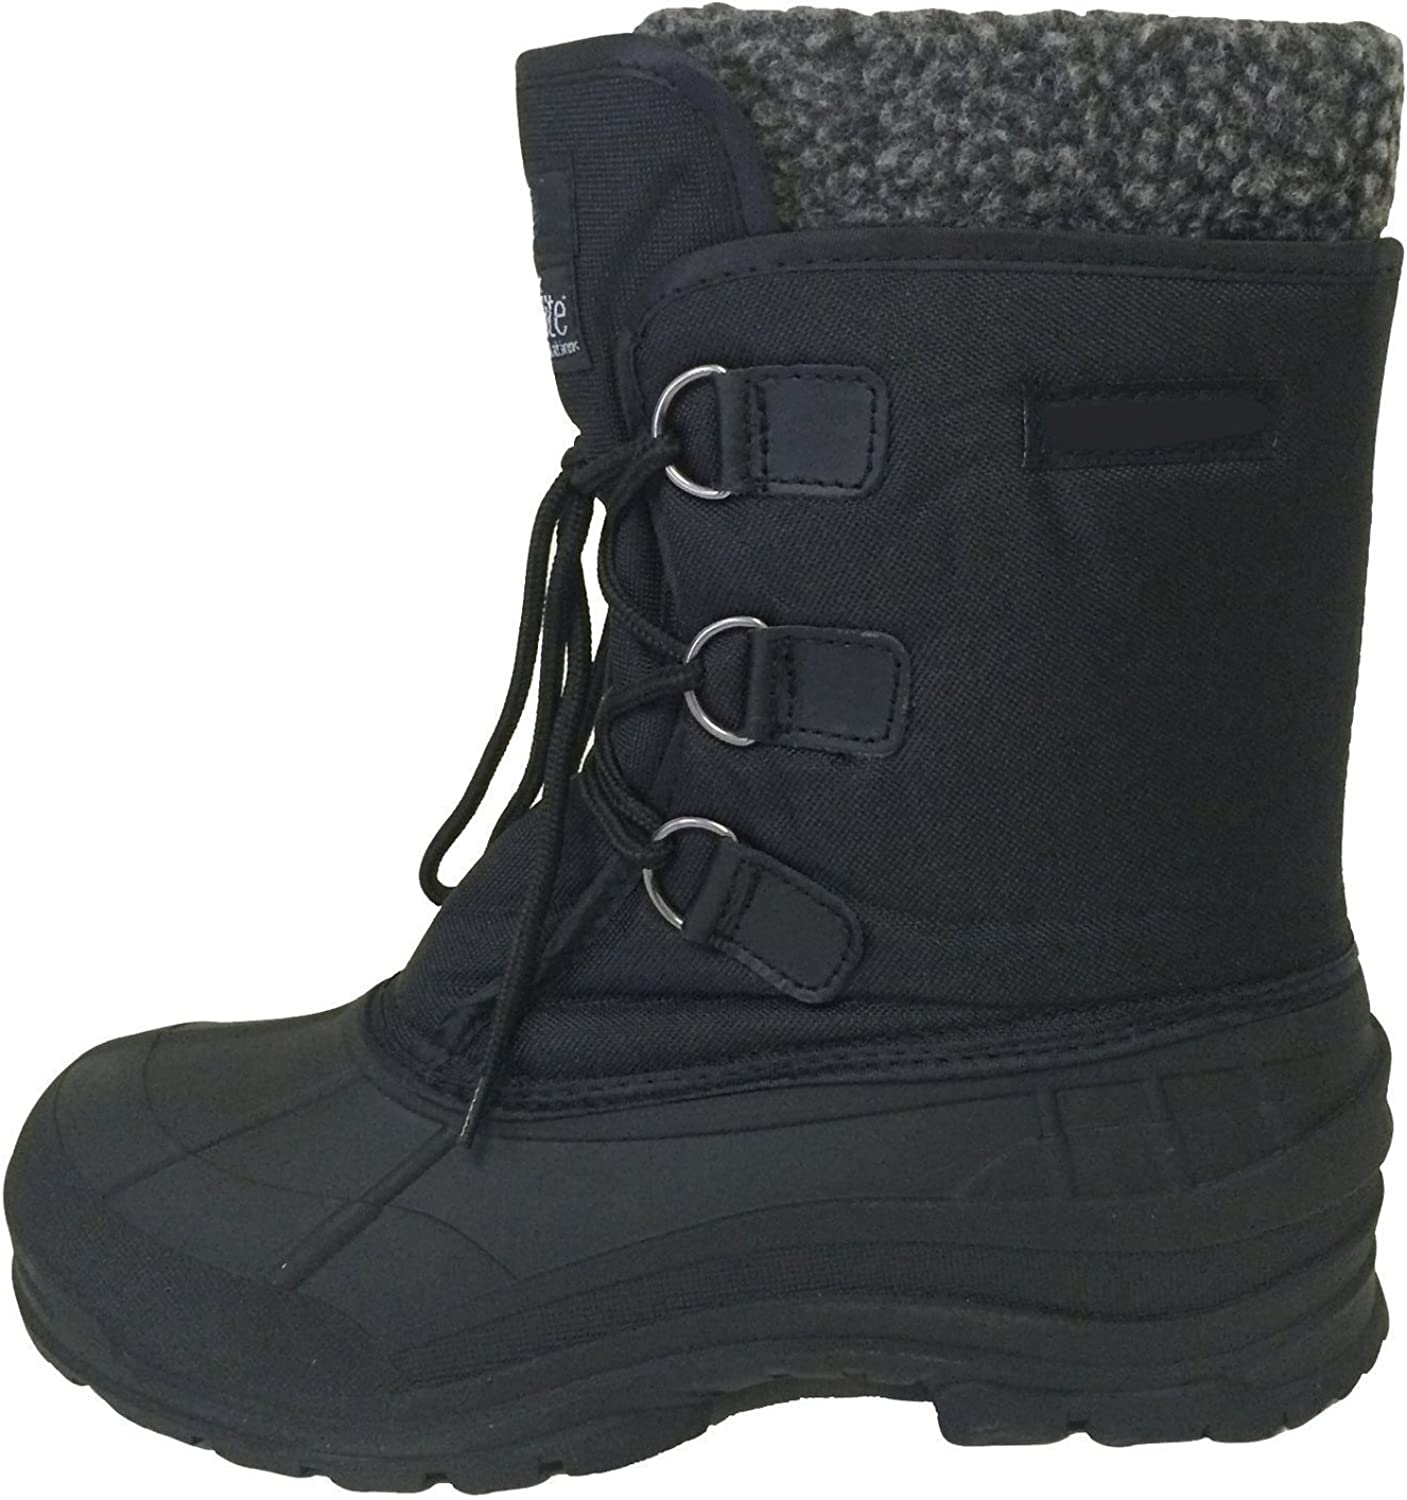 Good4U-MSB V51S Max 78% OFF Climate X Men's Winter W Challenge the lowest price of Japan Cold Snow Boots Weather